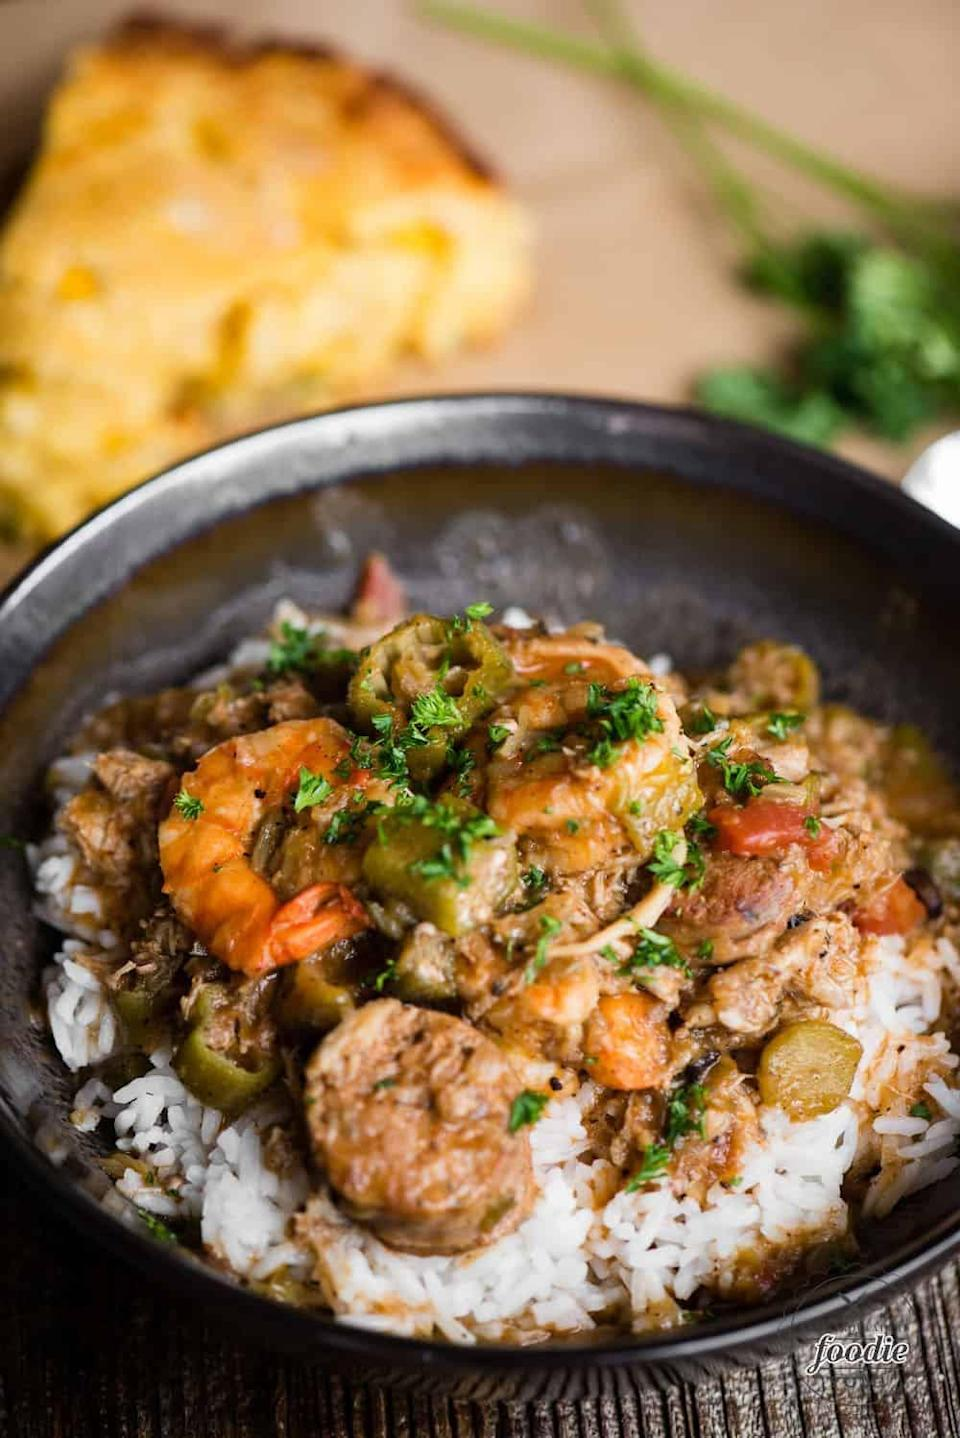 """<p>Get the greatest flavors of gumbo right here when you make this wow-worthy recipe. Shrimp, crab, chicken andouille sausage, and okra work together to make this authentic spicy Cajun meal come to life. Served over rice or grits, this gumbo will transport you to Louisiana in no time.</p> <p><strong>Get the recipe</strong>: <a href=""""https://selfproclaimedfoodie.com/seafood-gumbo/"""" class=""""link rapid-noclick-resp"""" rel=""""nofollow noopener"""" target=""""_blank"""" data-ylk=""""slk:seafood gumbo"""">seafood gumbo</a></p>"""